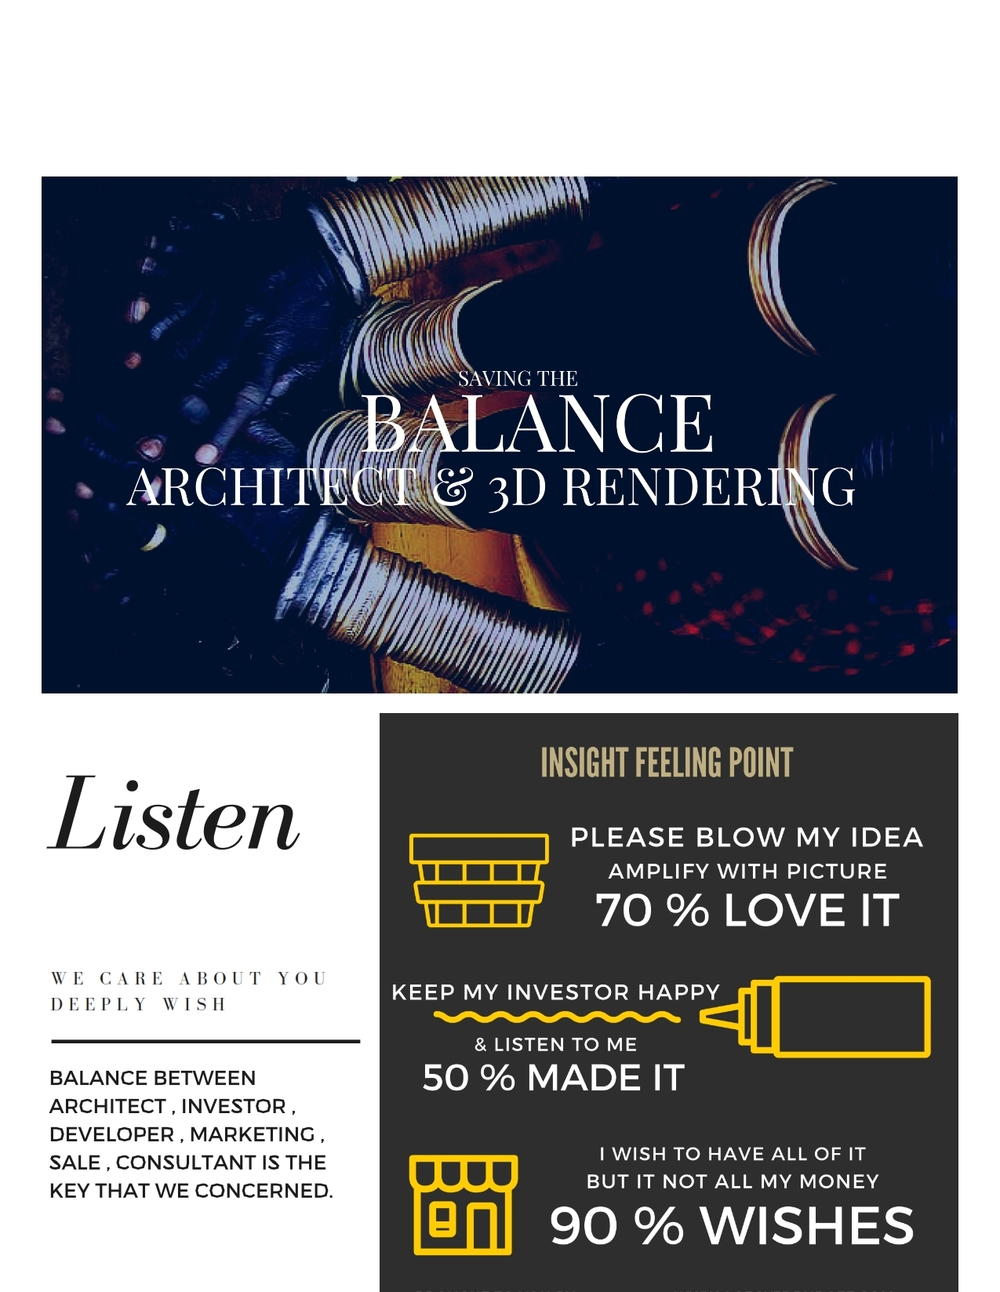 Architect and 3drendering